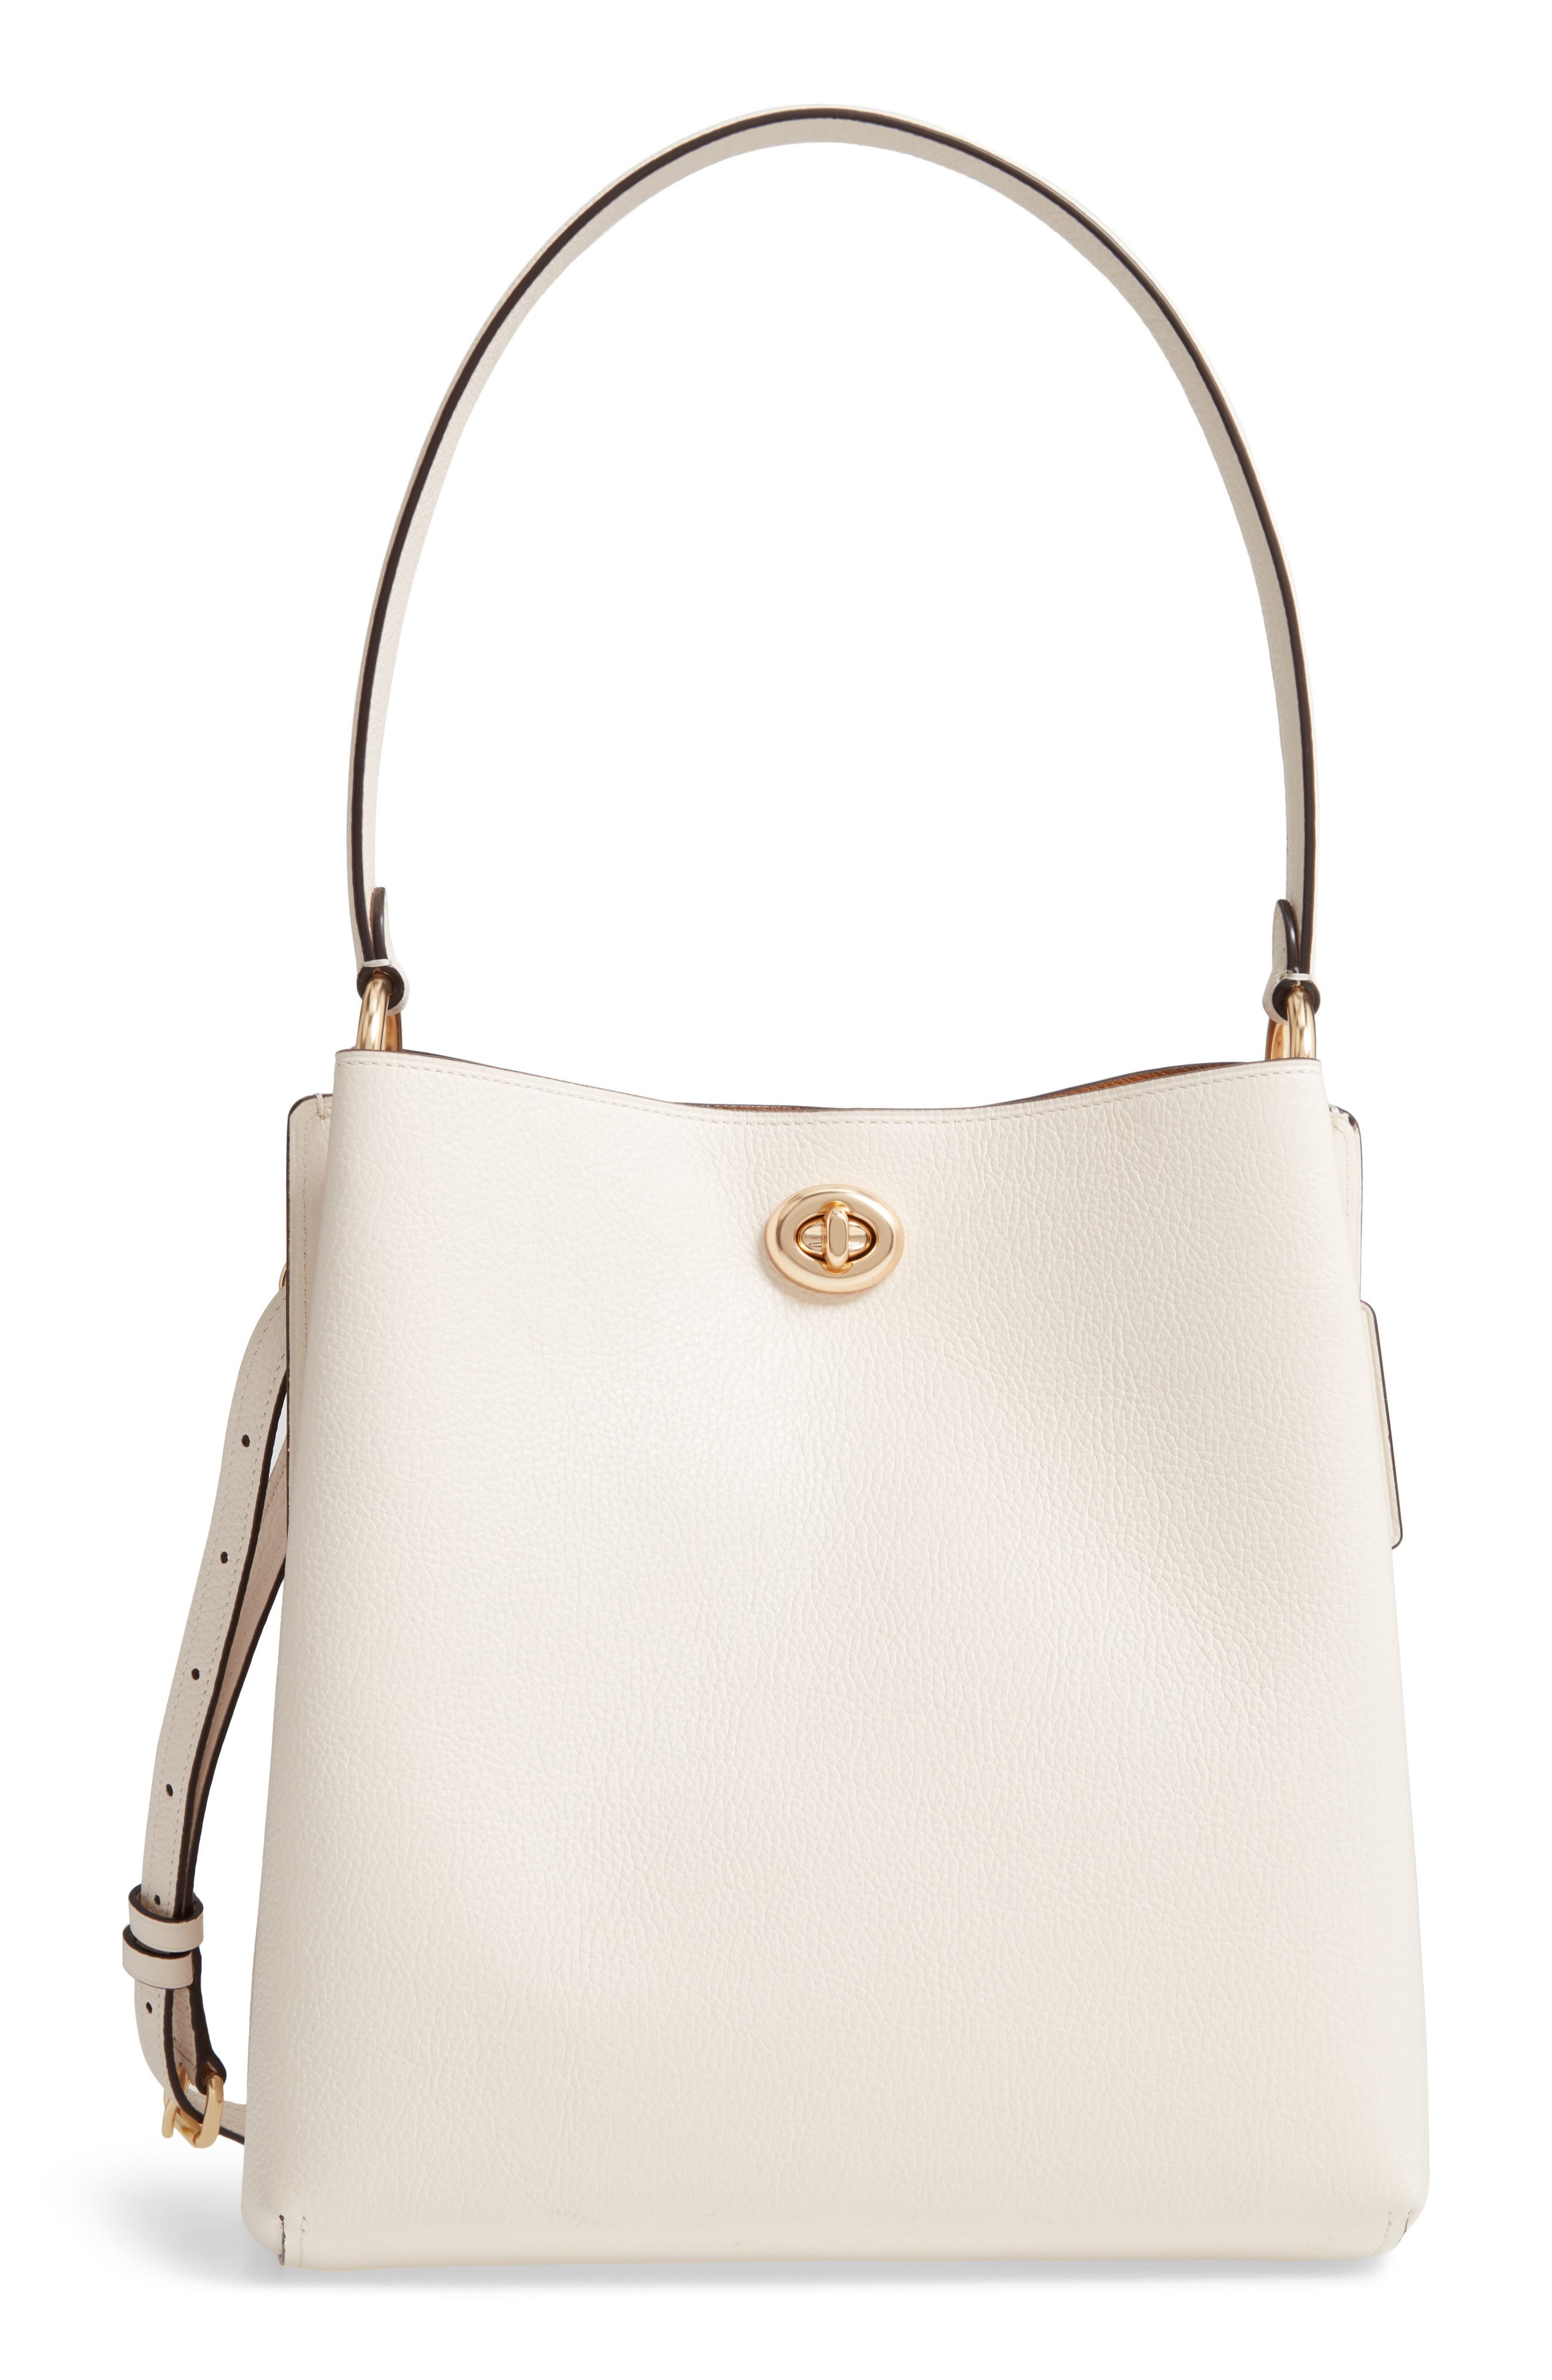 A clean-lined design beautifully plays up the pebbled leather of a structured bucket bag made with a divided interior and finished with signature hardware. A top handle and optional shoulder strap multiply your carrying options for the polished look. Style Name: Coach Charlie Leather Bucket Bag. Style Number: 5776046. Available in stores.